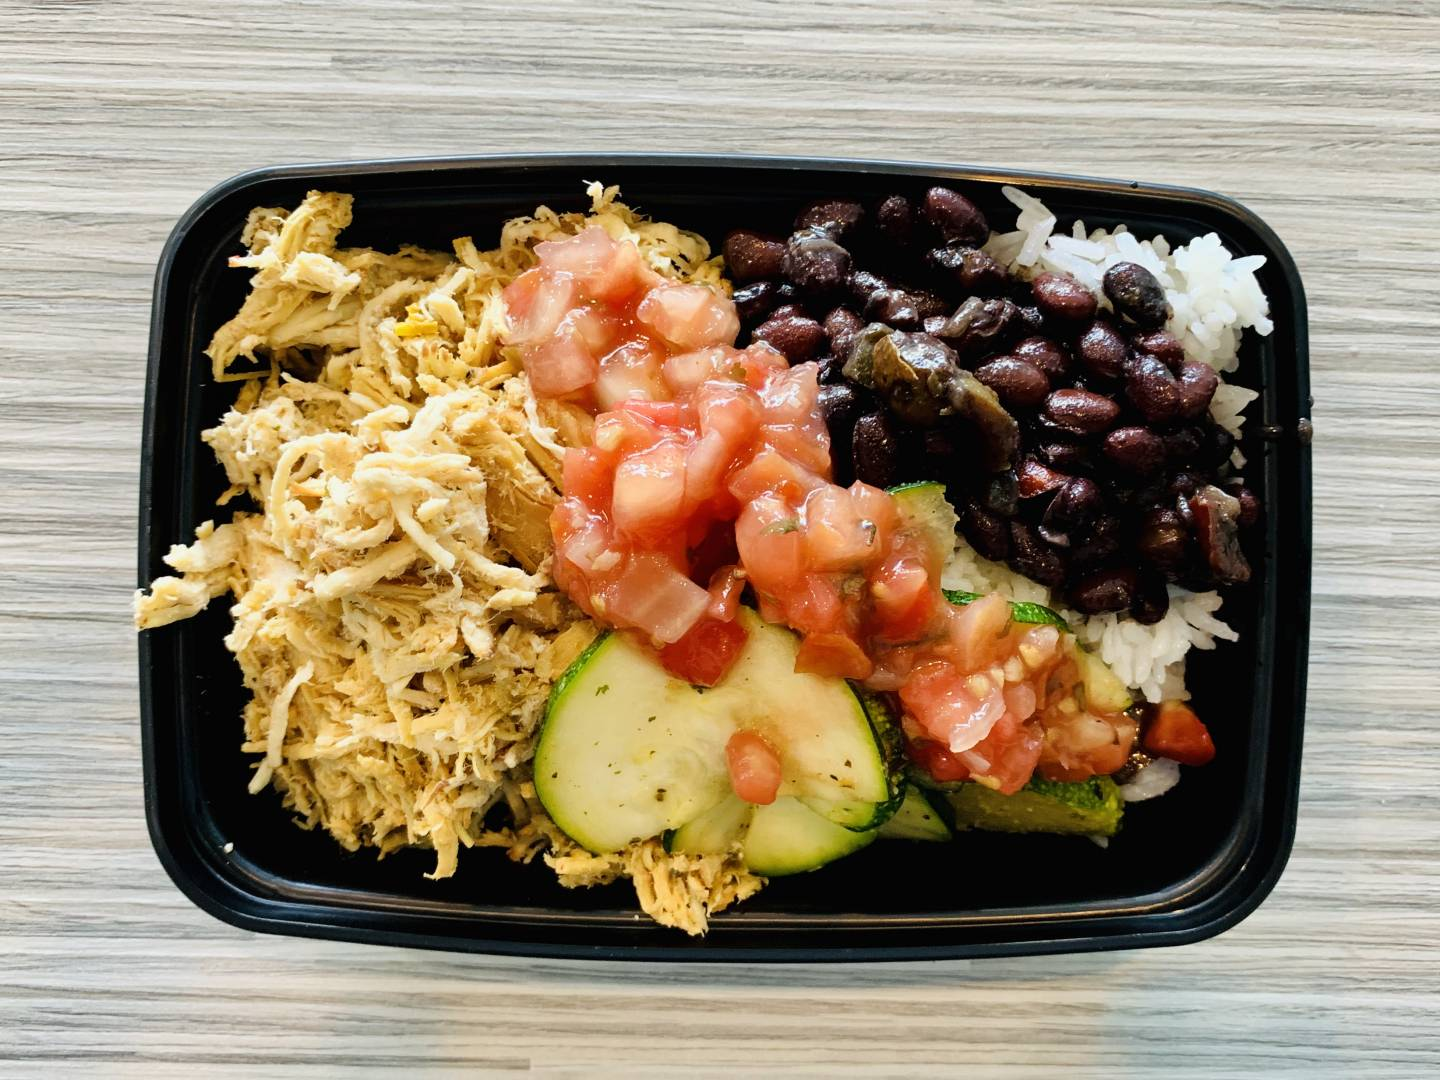 Shredded Chicken, Jasmine Rice, Black Beans, Pico de Gallo and Zucchini